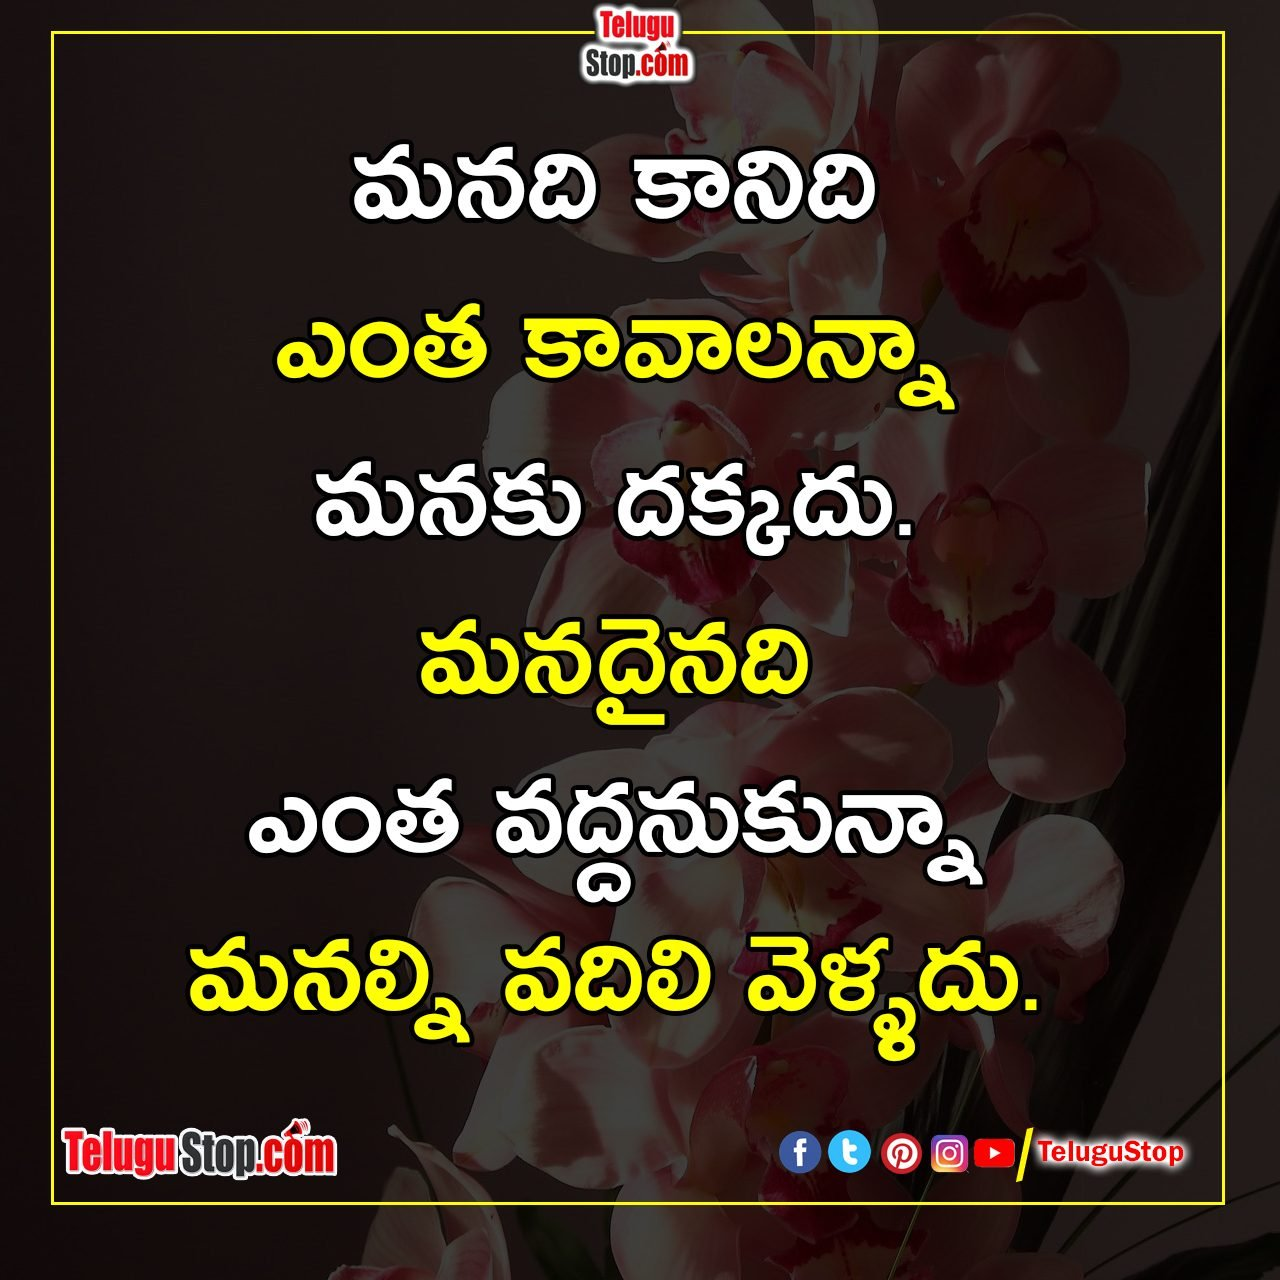 Telugu Help Others Inspirational Quotes, Honest Related Inspirational Quotes, Life Facts Inspirational Quotes, Ours Is What Is Left In Us Inspirational Quotes-Telugu Daily Quotes - Inspirational/Motivational/Love/Friendship/Good Morning Quote